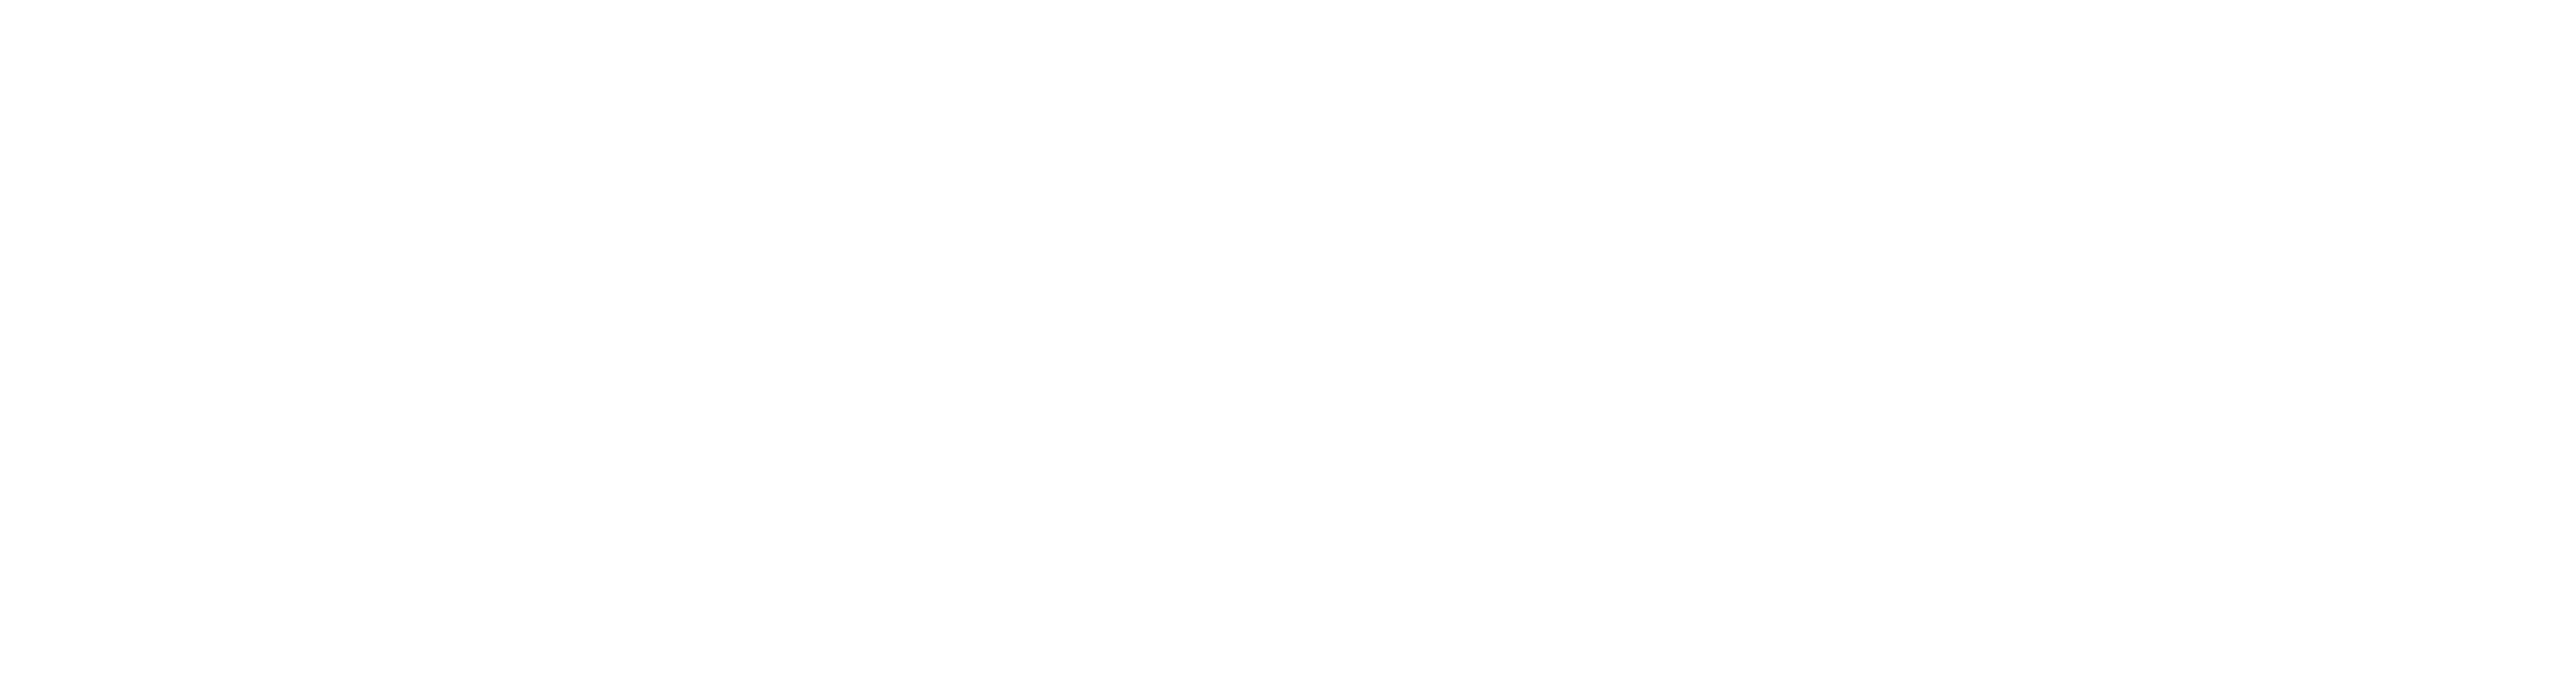 Special winter deal at Tribeca STL in St. Louis, Missouri